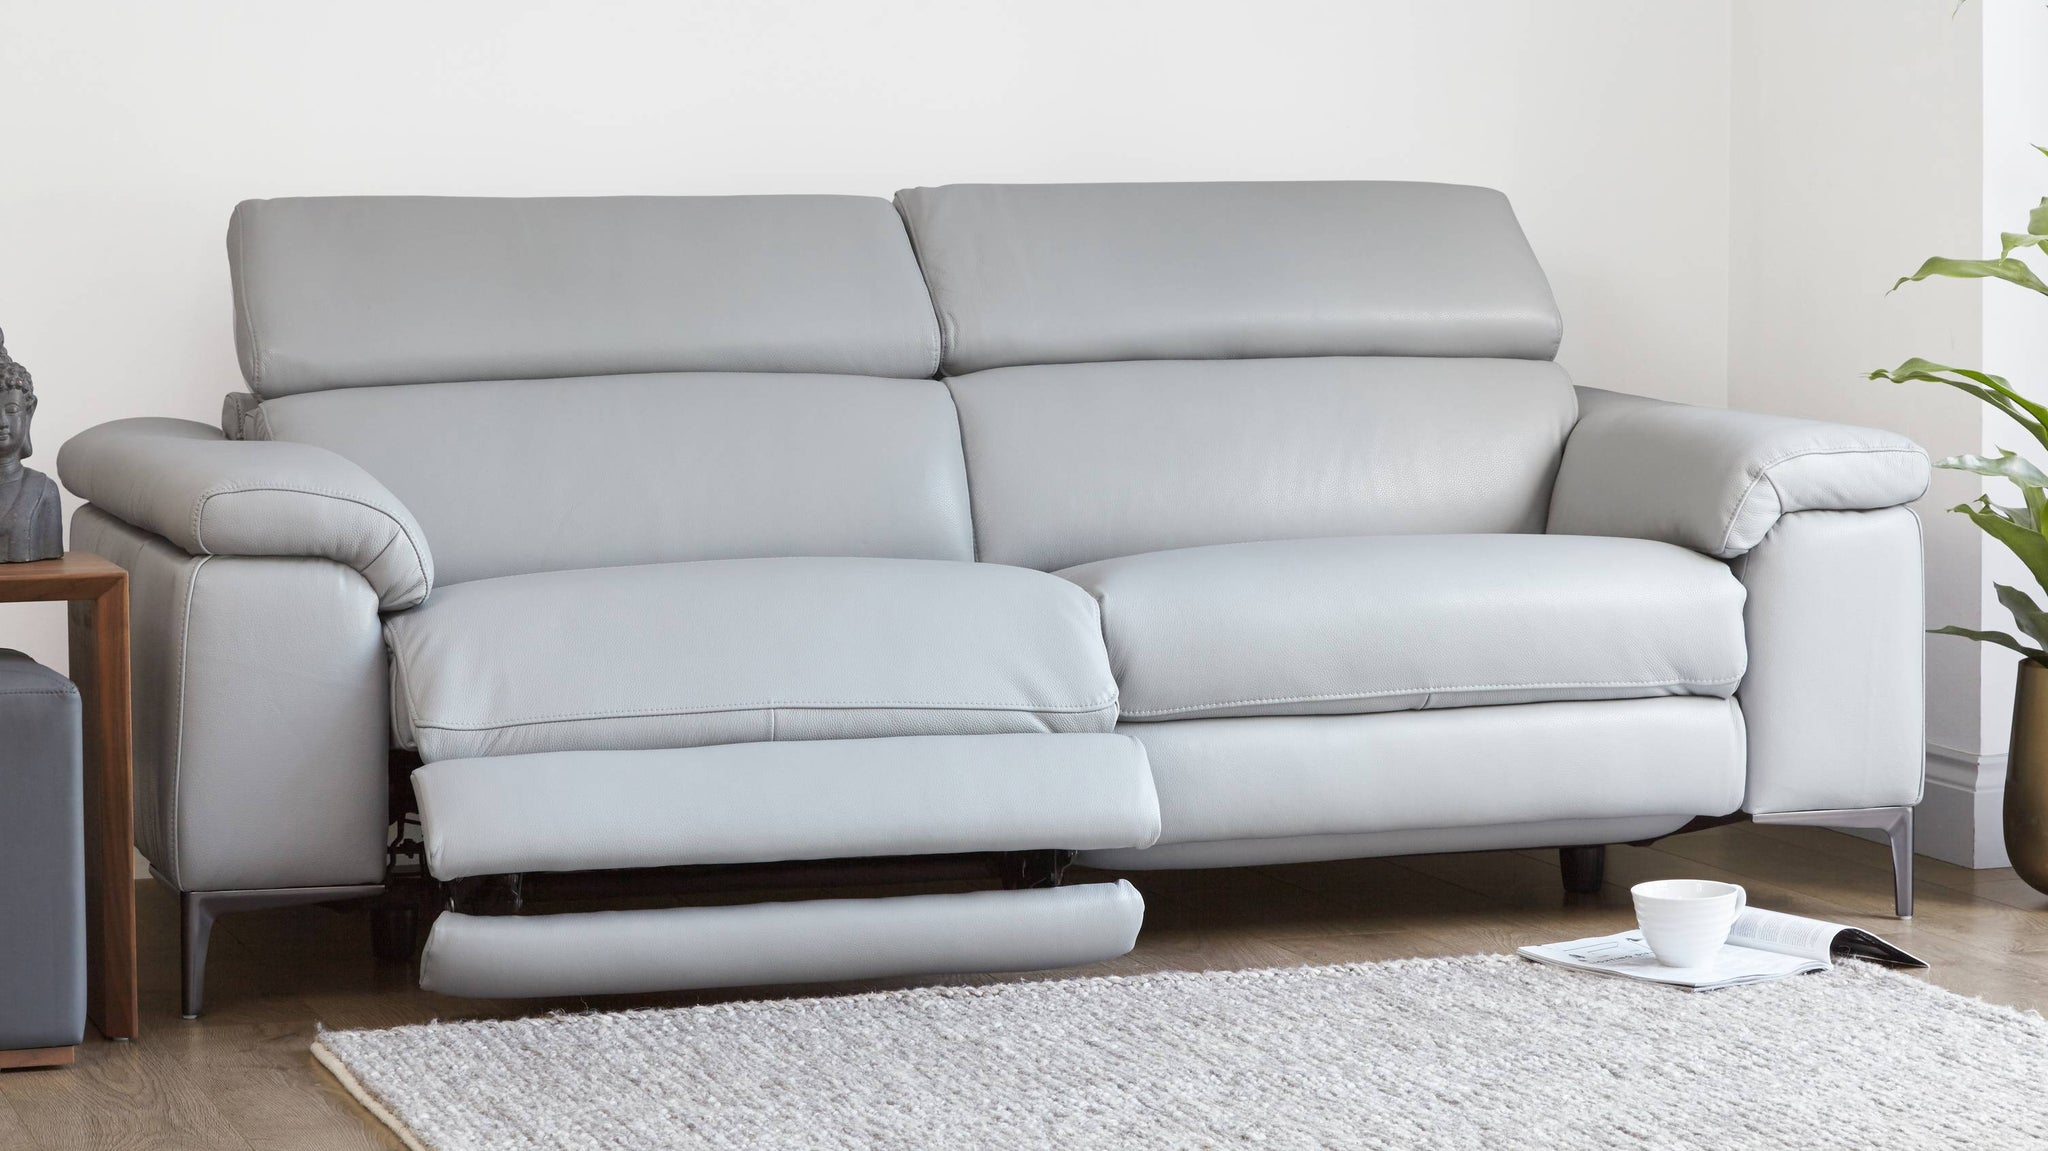 Reclining sofa with multiple angles